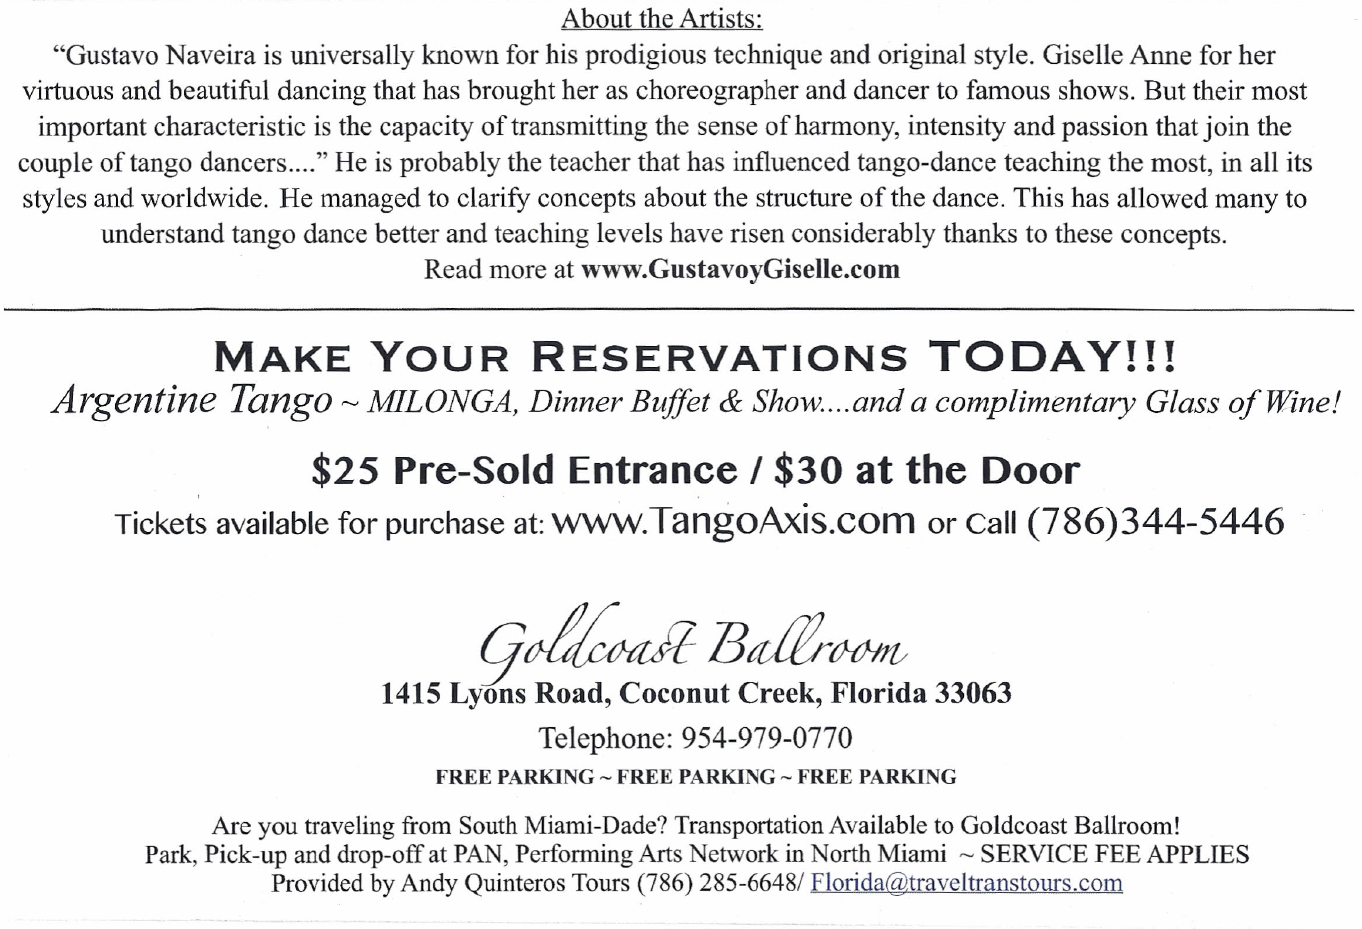 About The Great Milonga Party - April 5, 2014 - at Goldcoast Ballroom